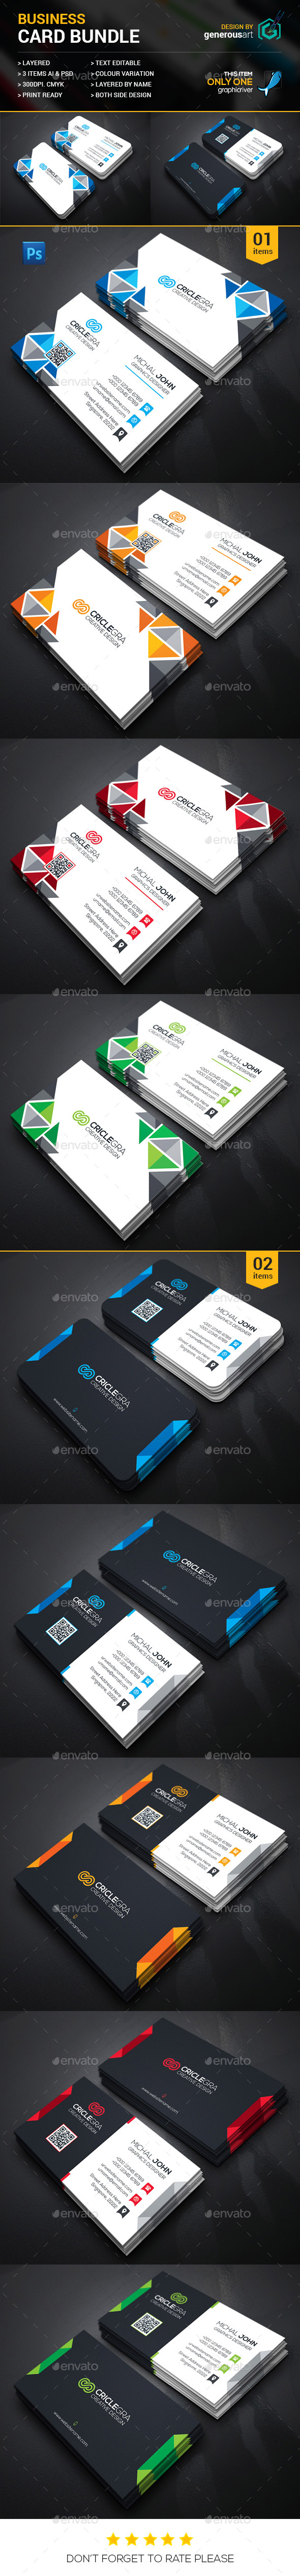 Business Card Bundle 2 in _1 - Corporate Business Cards